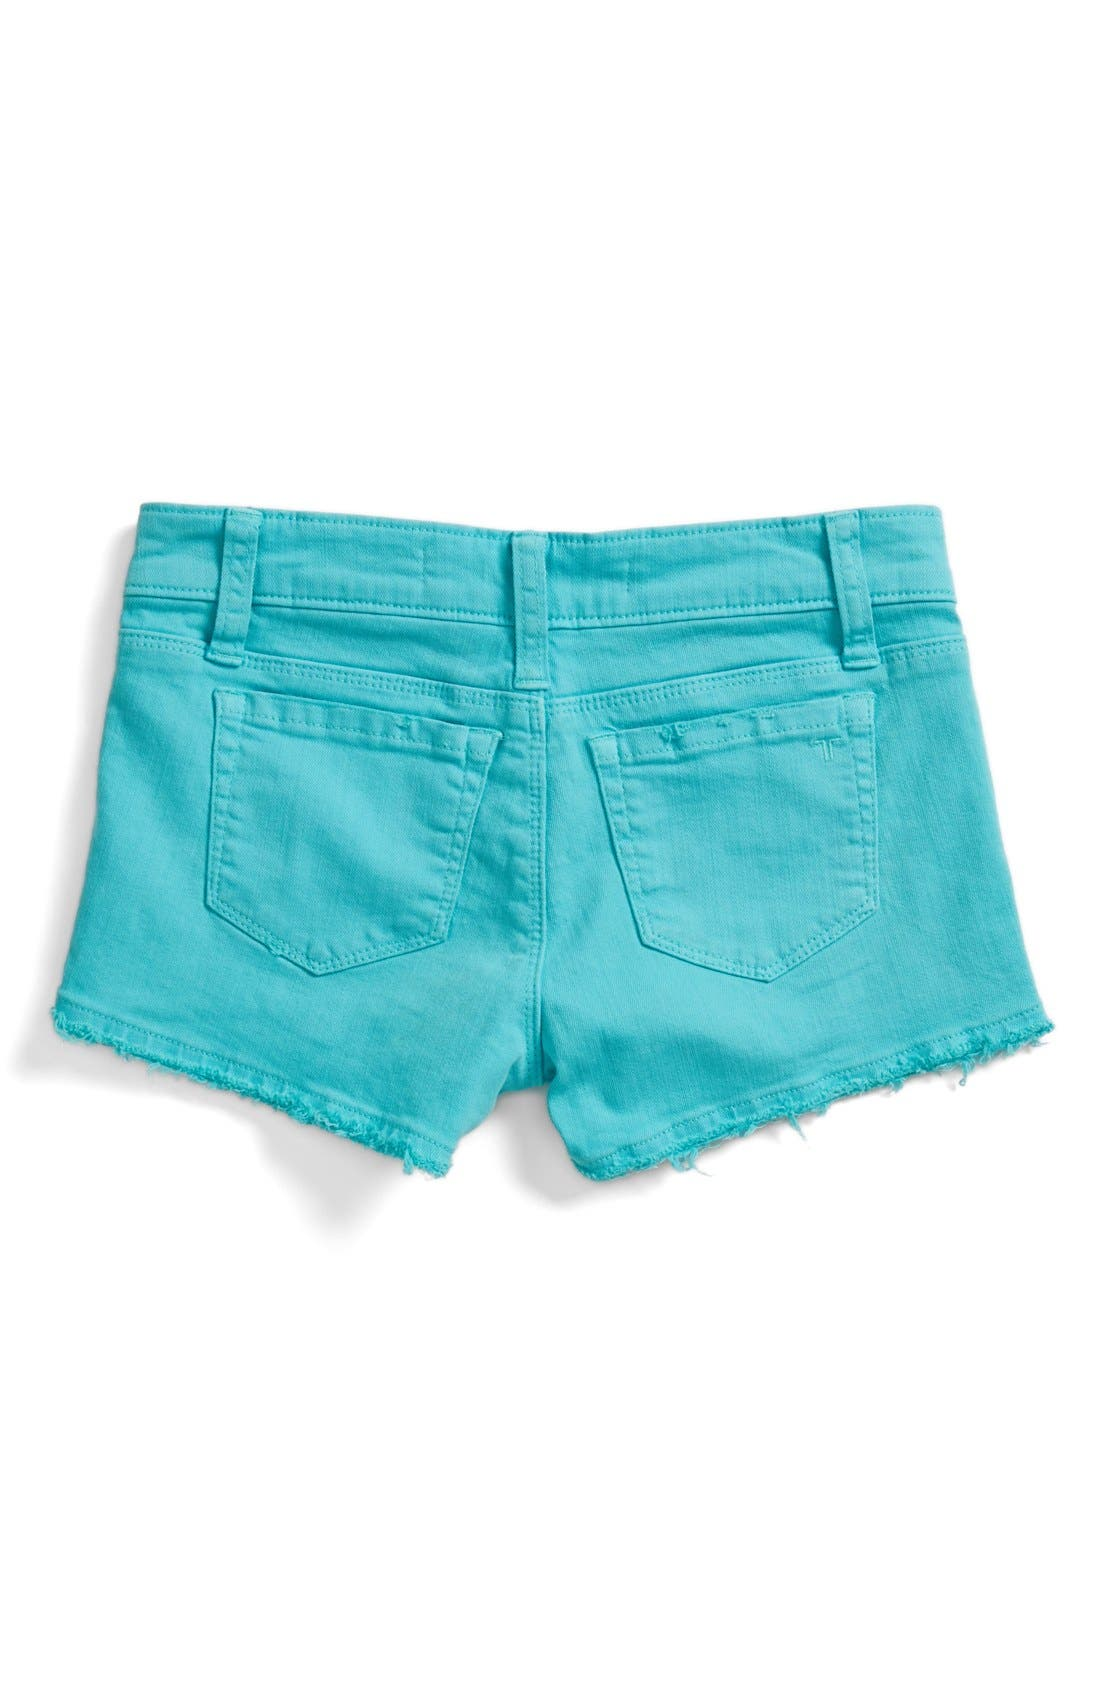 Frayed Shorts,                             Main thumbnail 1, color,                             400